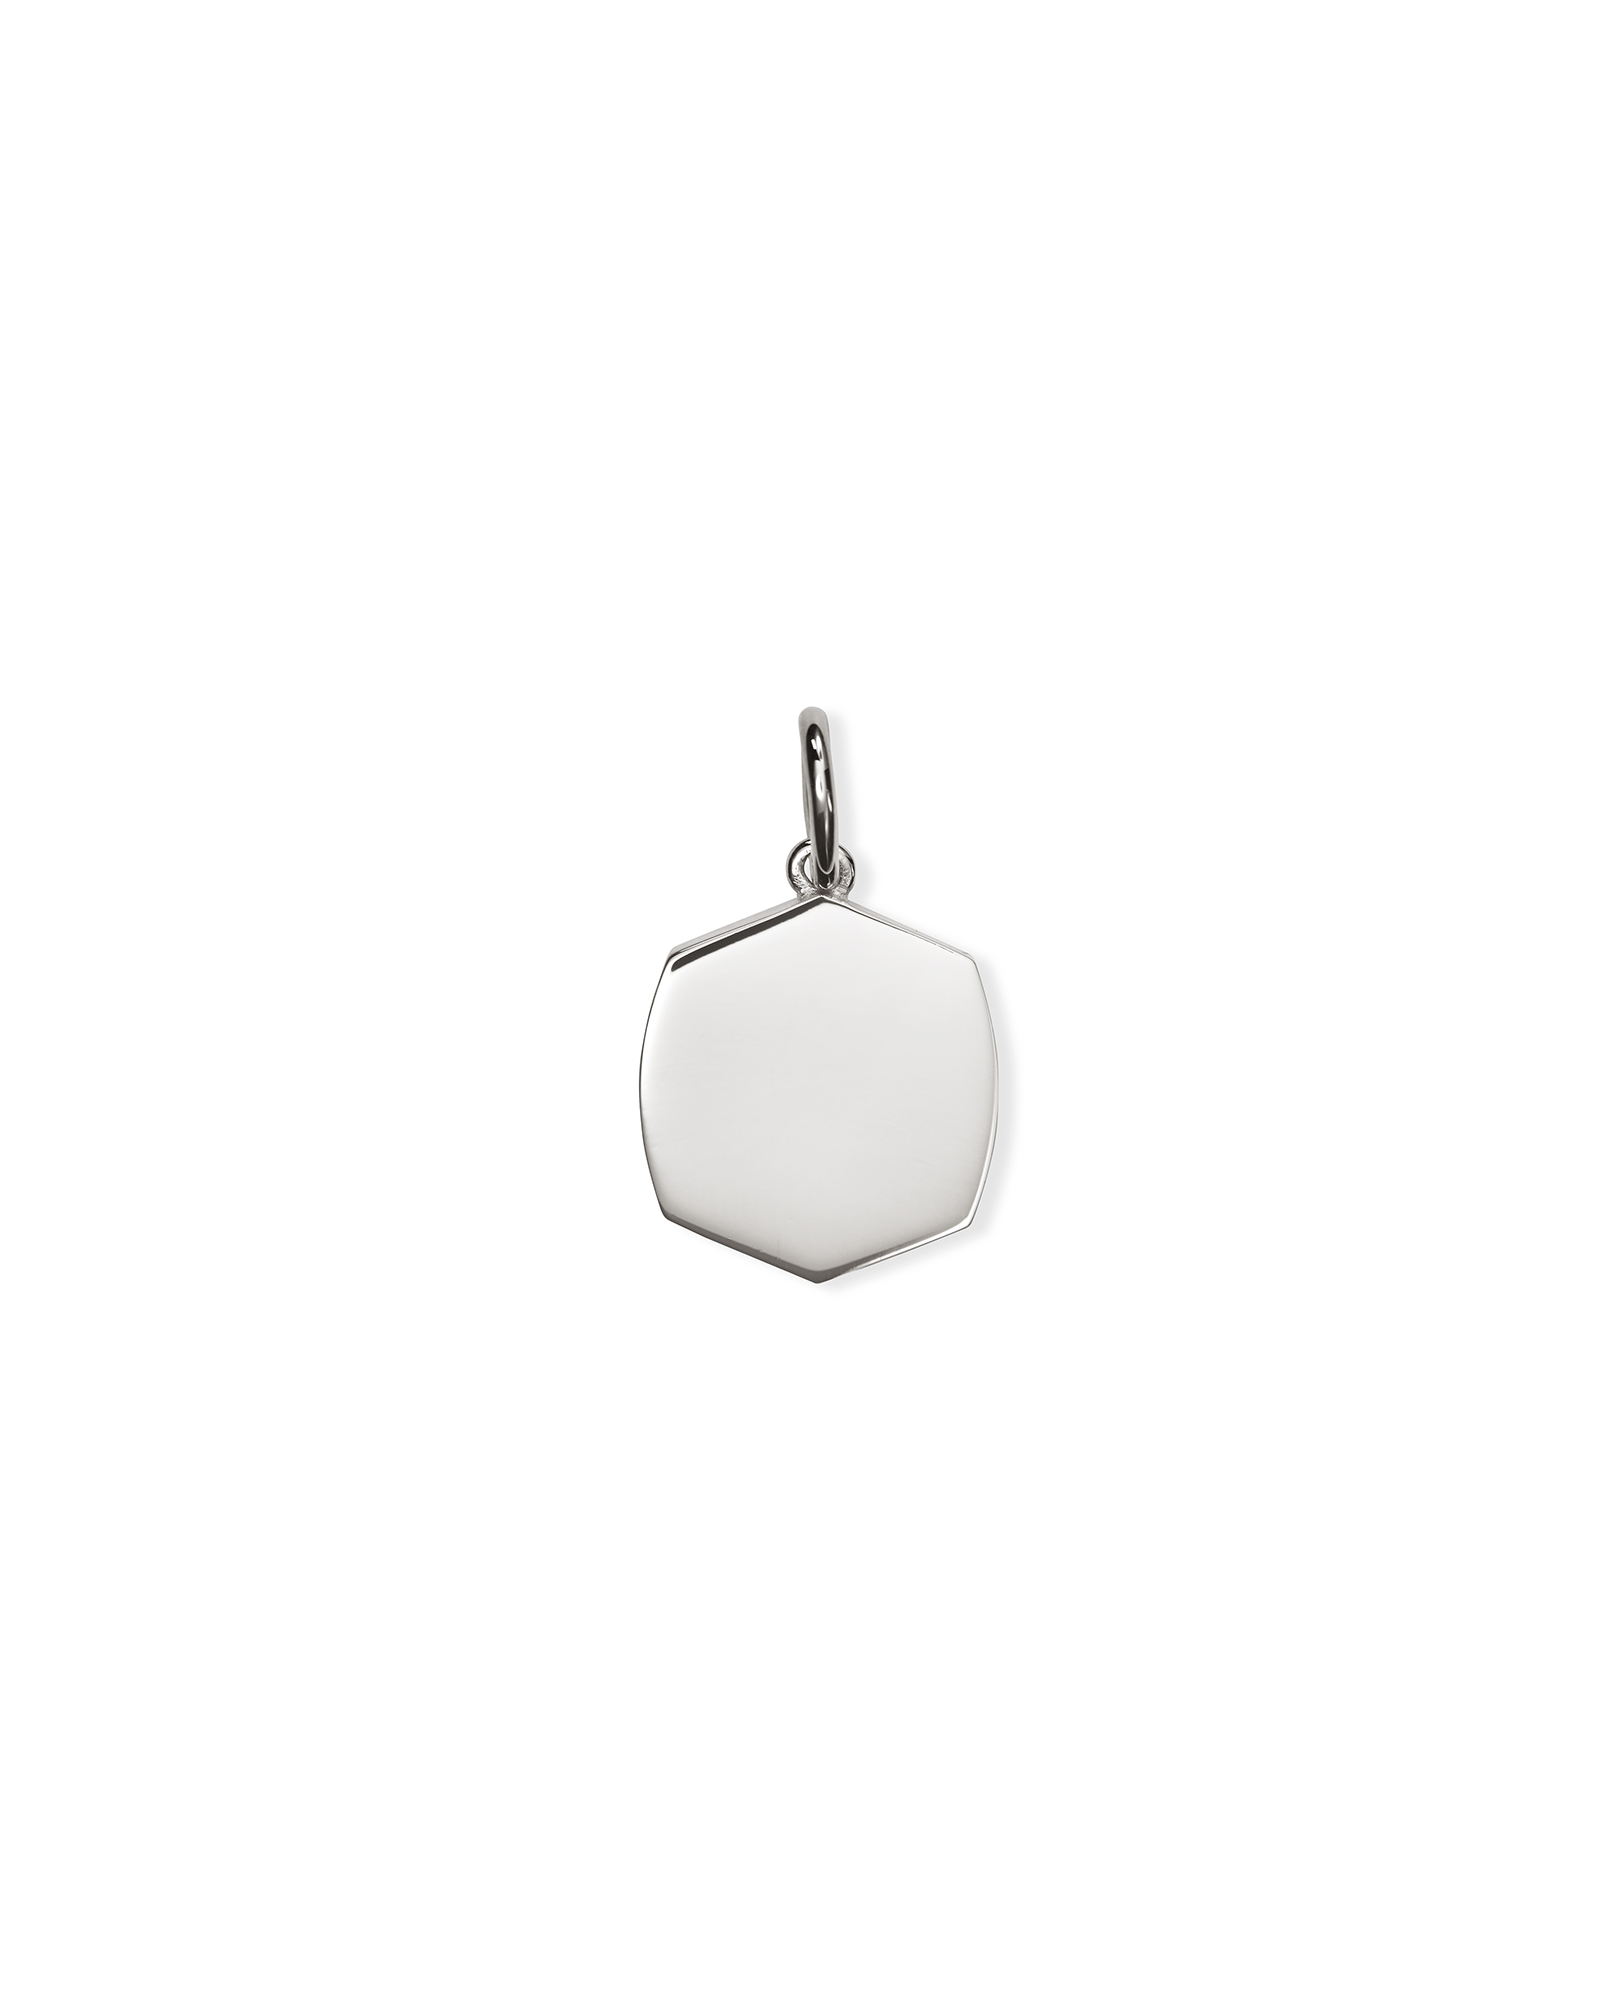 Davis Small Charm in Sterling SIlver